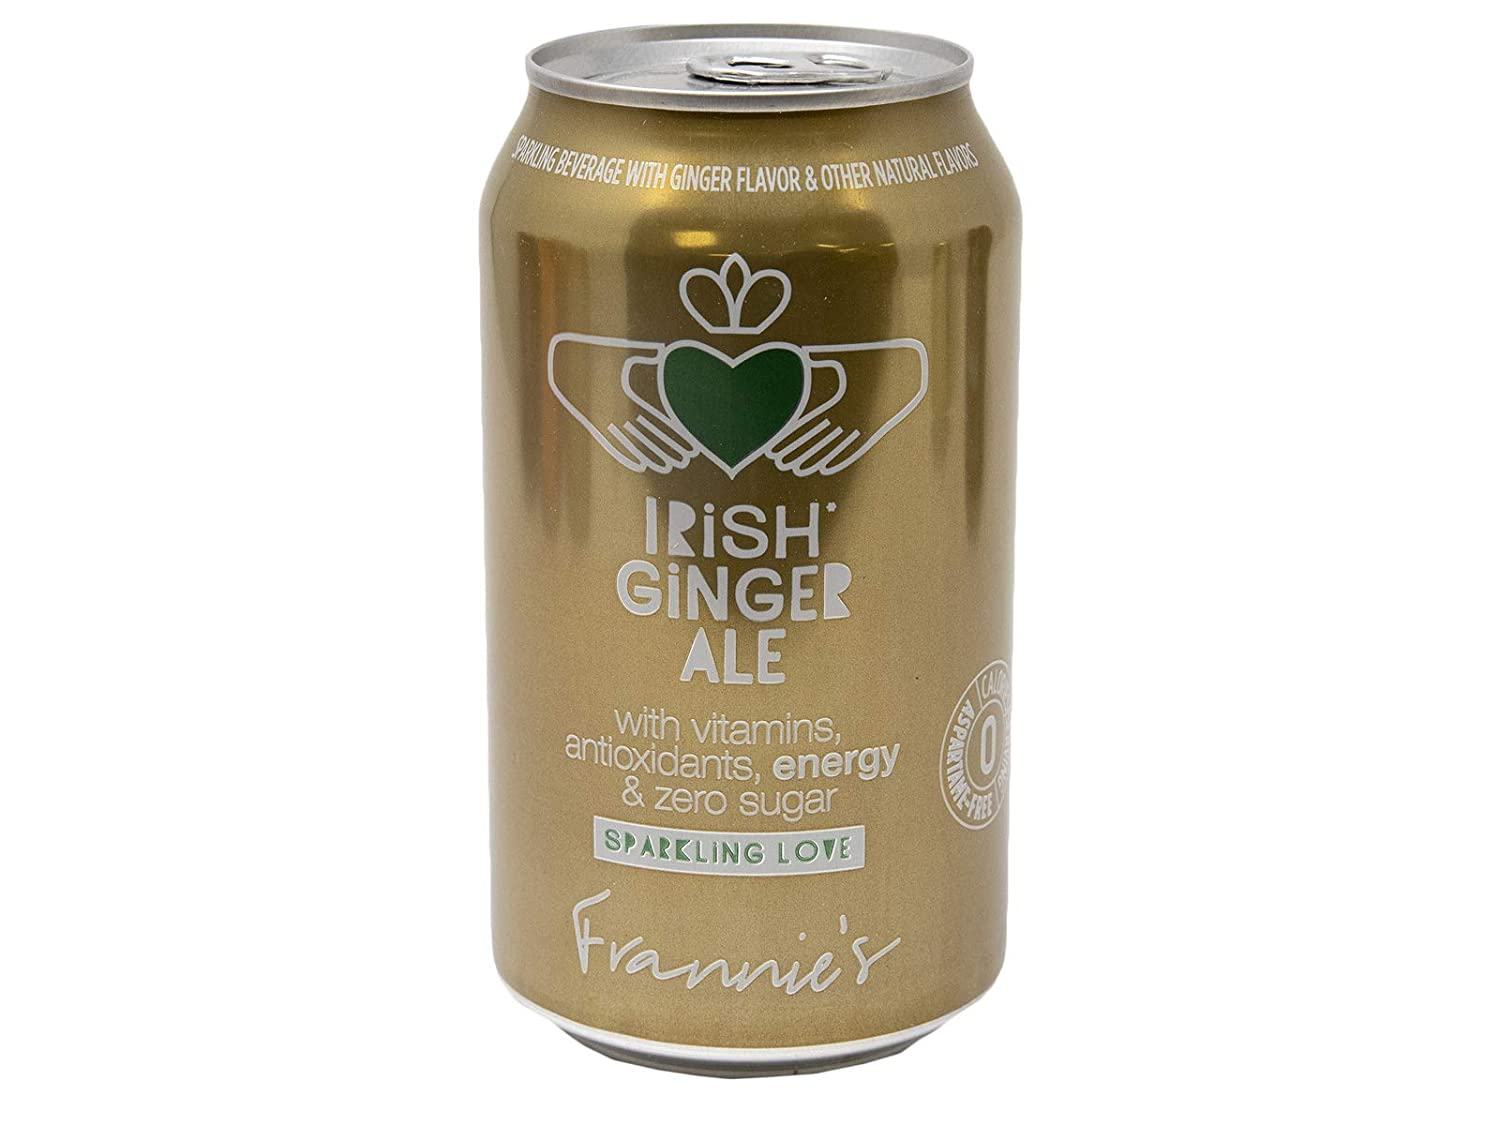 Frannie's Sparkling Irish Ginger Ale, Protected With High-Density Foam, With Vitamins, Antioxidants, Energy, and Zero Sugar, 12 Oz. Cans (Case of 24 Cans)